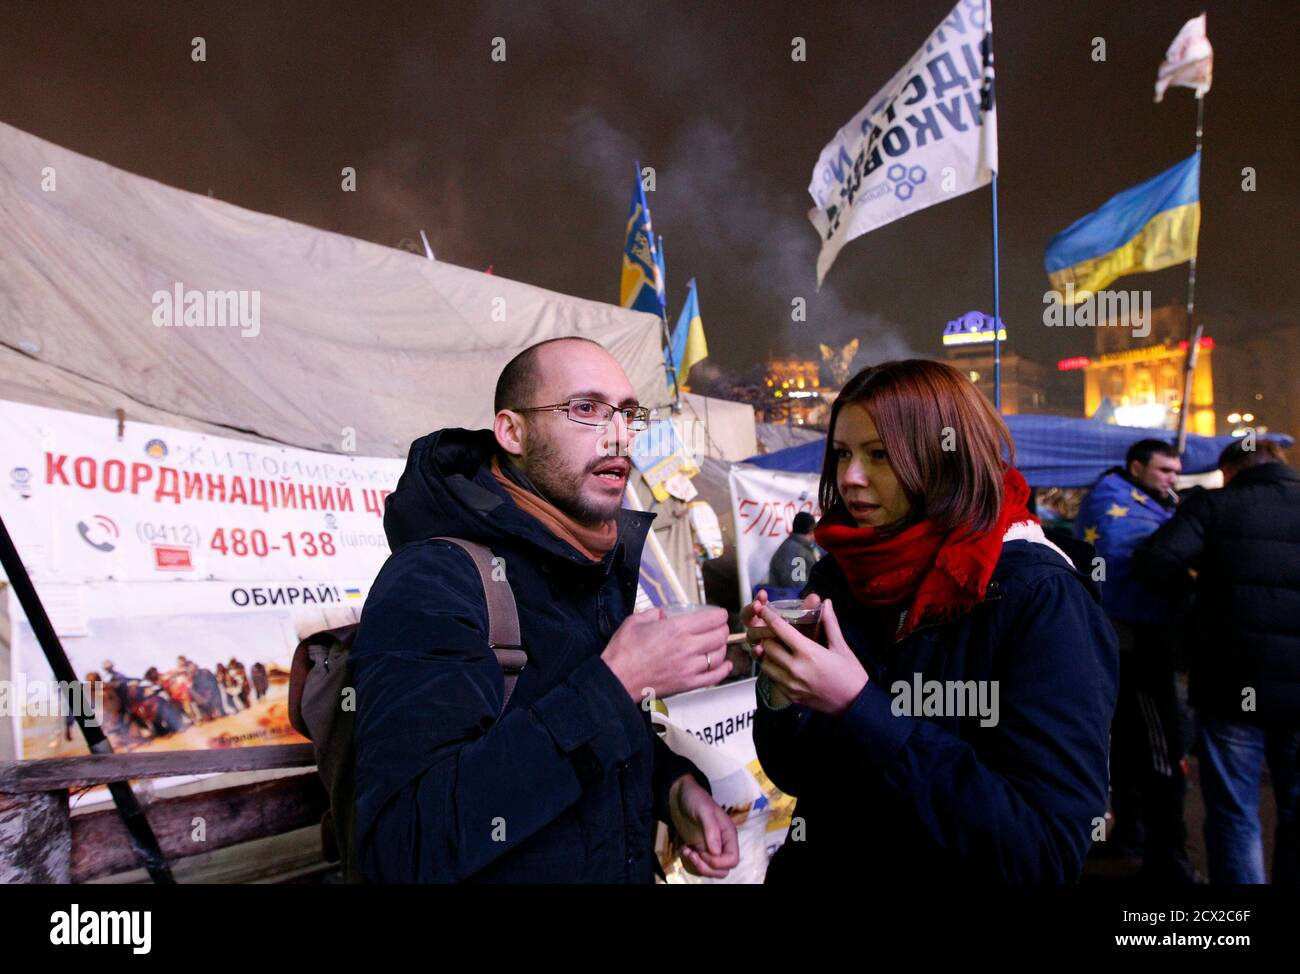 Igor Skliarevsky and his wife Elena drink tea in a pro-European protesters camp at Independence Square in Kiev, December 16, 2013. By day, Igor Skliarevsky works as a graphic designer. By night, he is an anti-government protester, sometimes manning the barricades in Ukraine's snowy capital. The 36-year-old delivers maps for fellow protesters, directing them to medical posts or kitchens. He also set up a website coordinating food, warm clothing and other supplies for those camped out on Kiev's Independence Square. Picture taken December 16, 2013.  REUTERS/Vasily Fedosenko (UKRAINE - Tags: POLIT Foto de stock